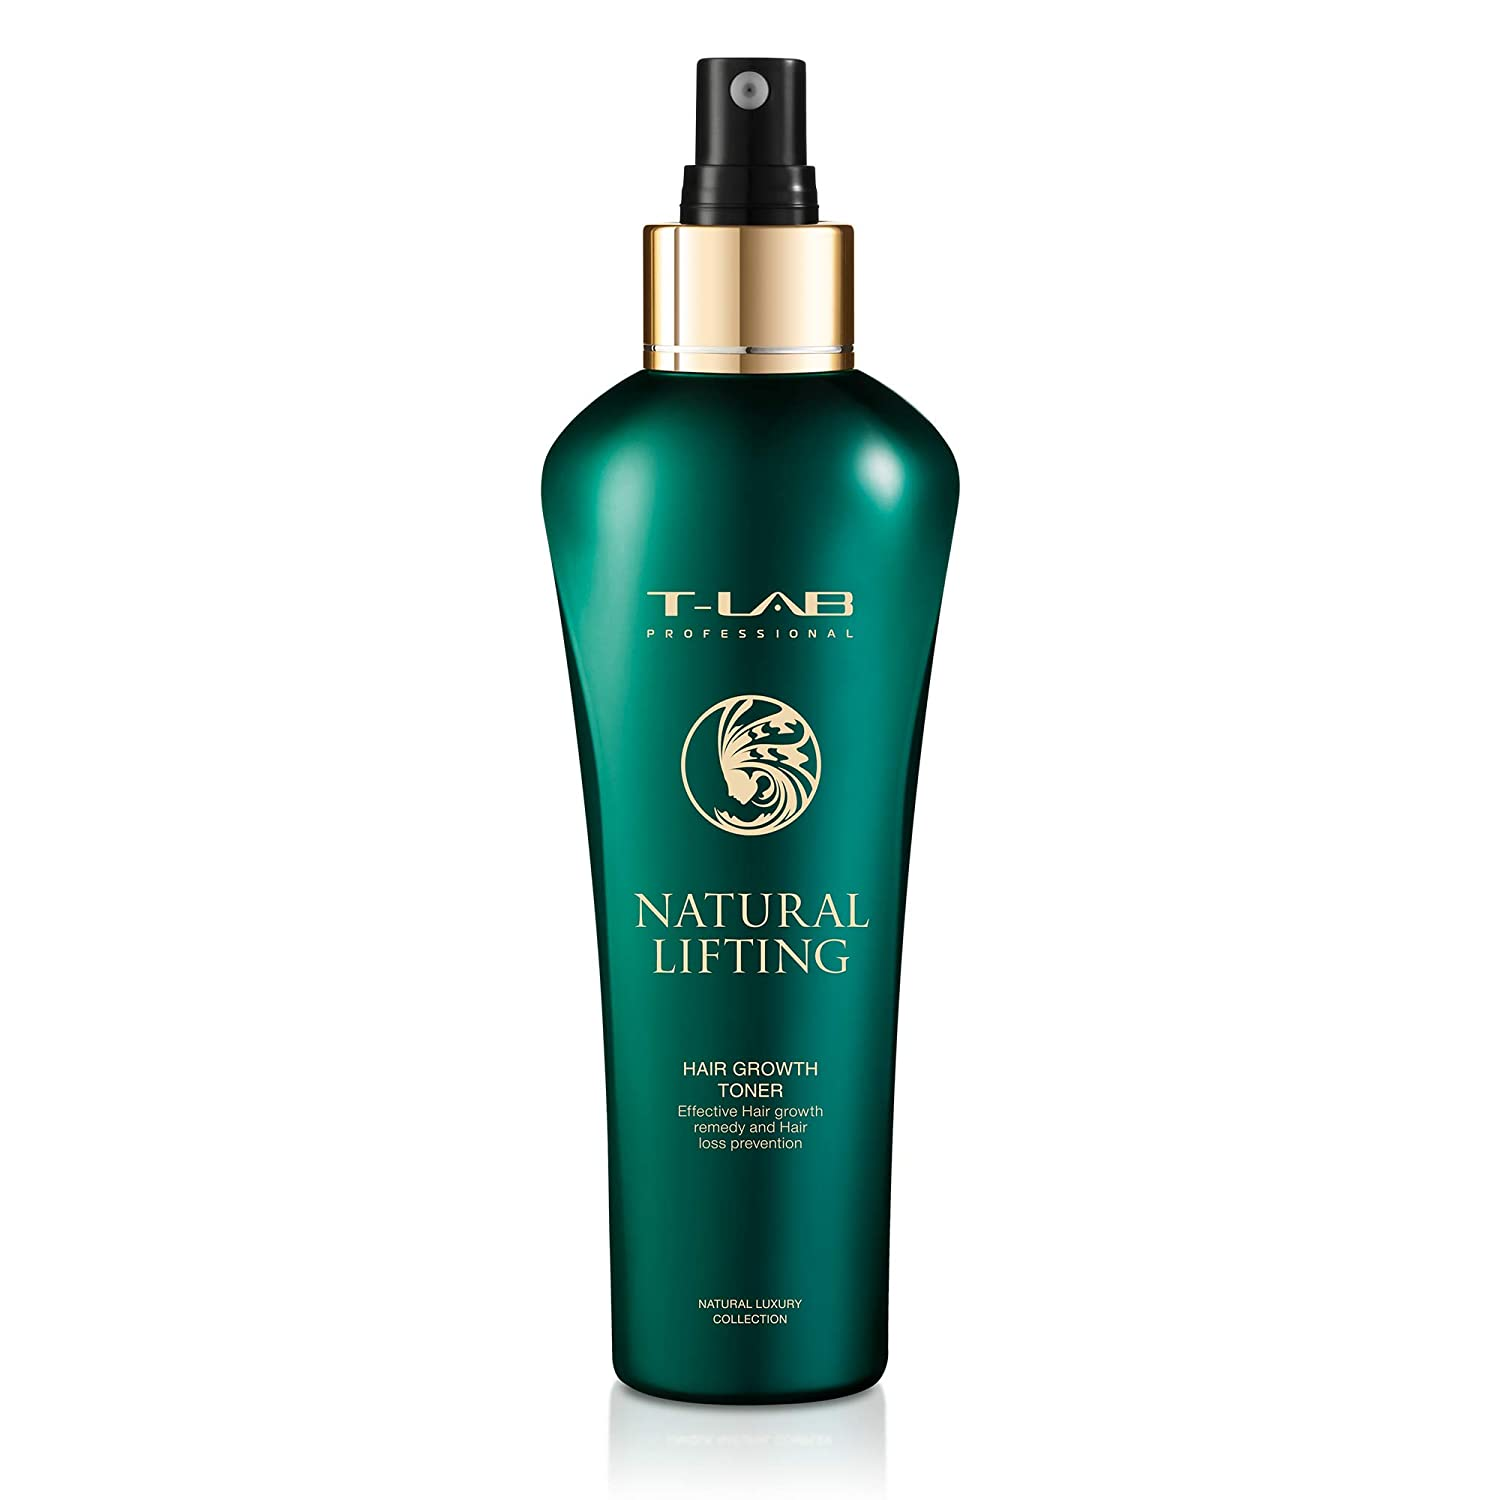 T-LAB PROFESSIONAL Natural Lifting Hair Growth Toner for Hair Growth, Hair Thickening Spray for Fine and Thin Hair, Hair Strengthening Treatment, Root Booster Spray for Hair 5.07 Fl Oz